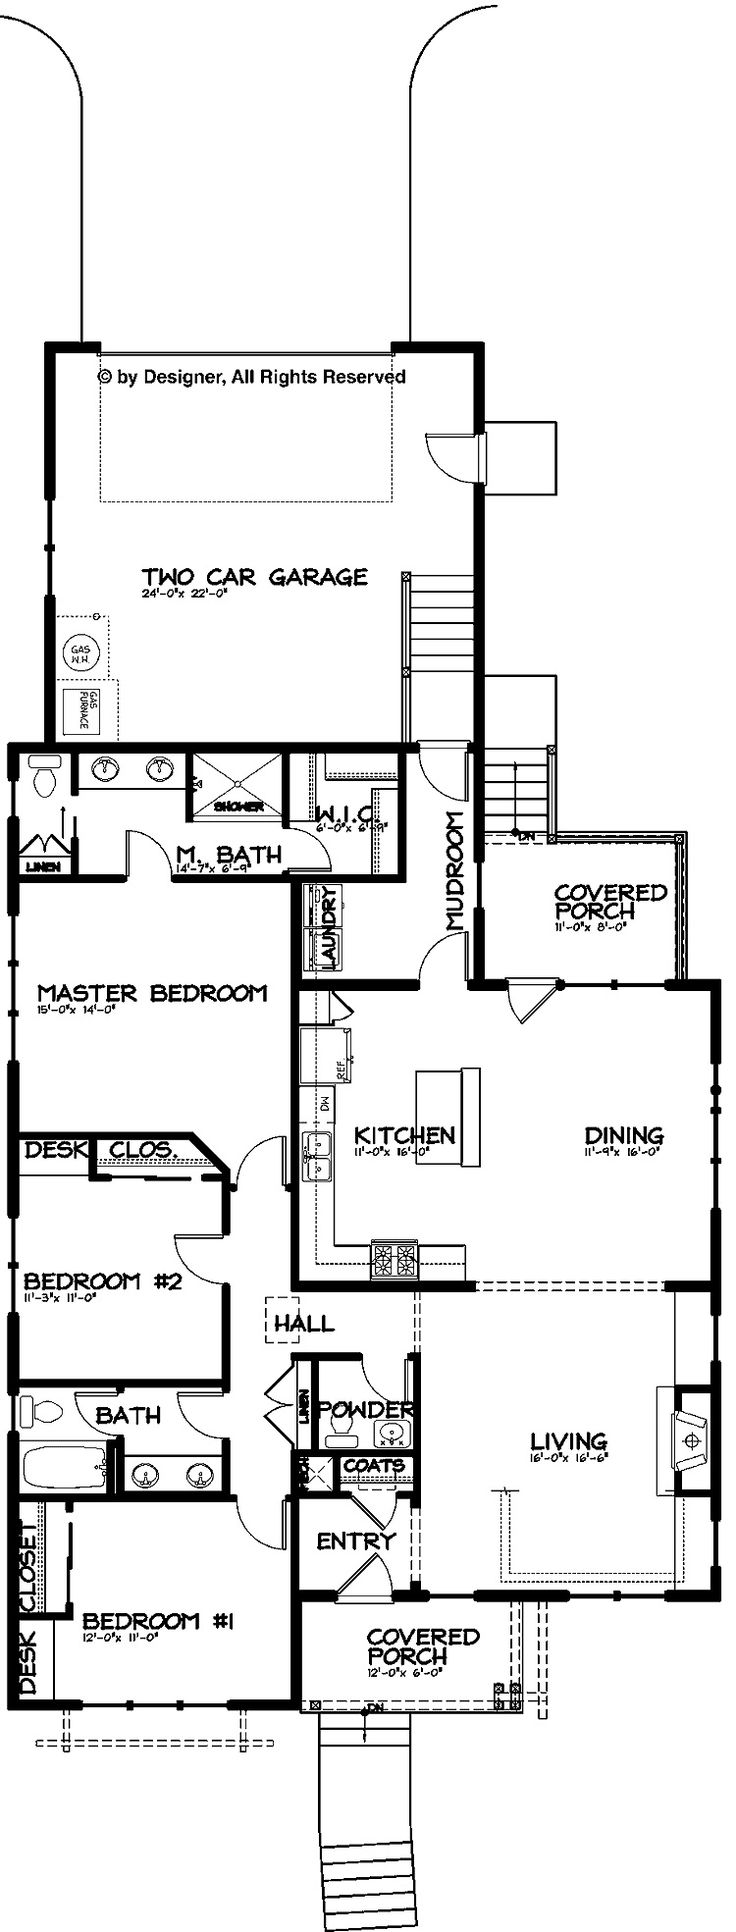 796 best architecture and house plans images on pinterest dream 796 best architecture and house plans images on pinterest dream house plans house floor plans and architecture